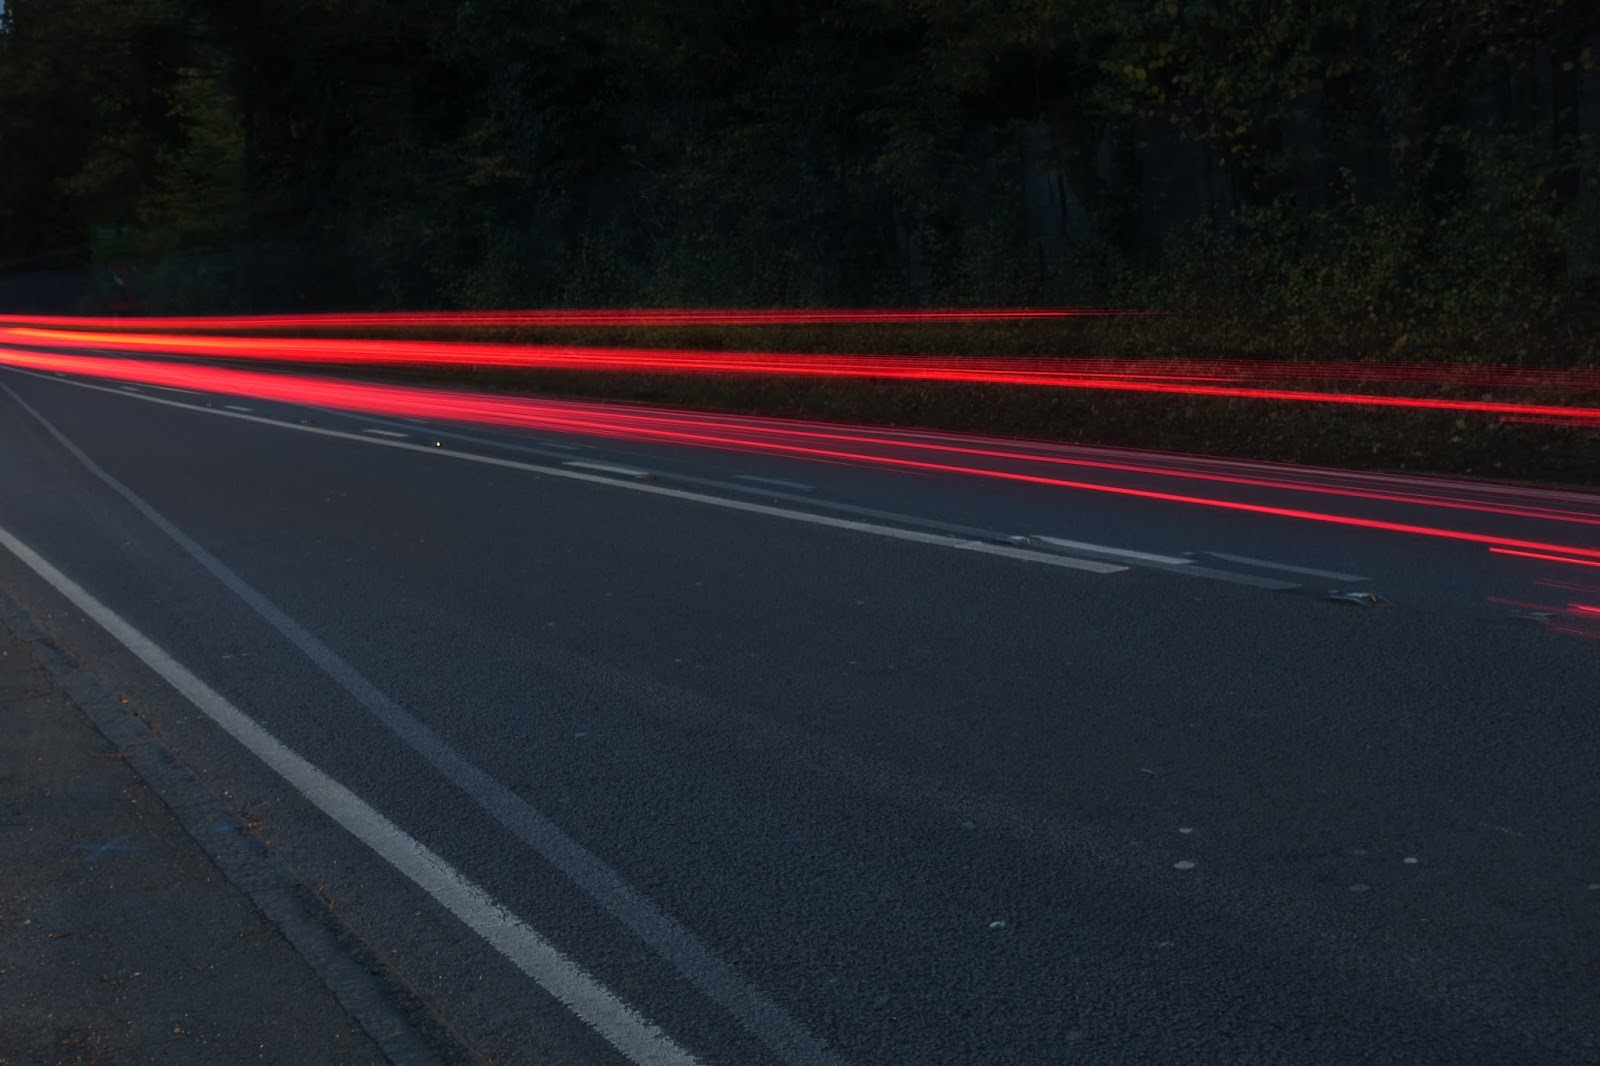 A road with red lights caused by car tail lights taken on a slow shutter speed